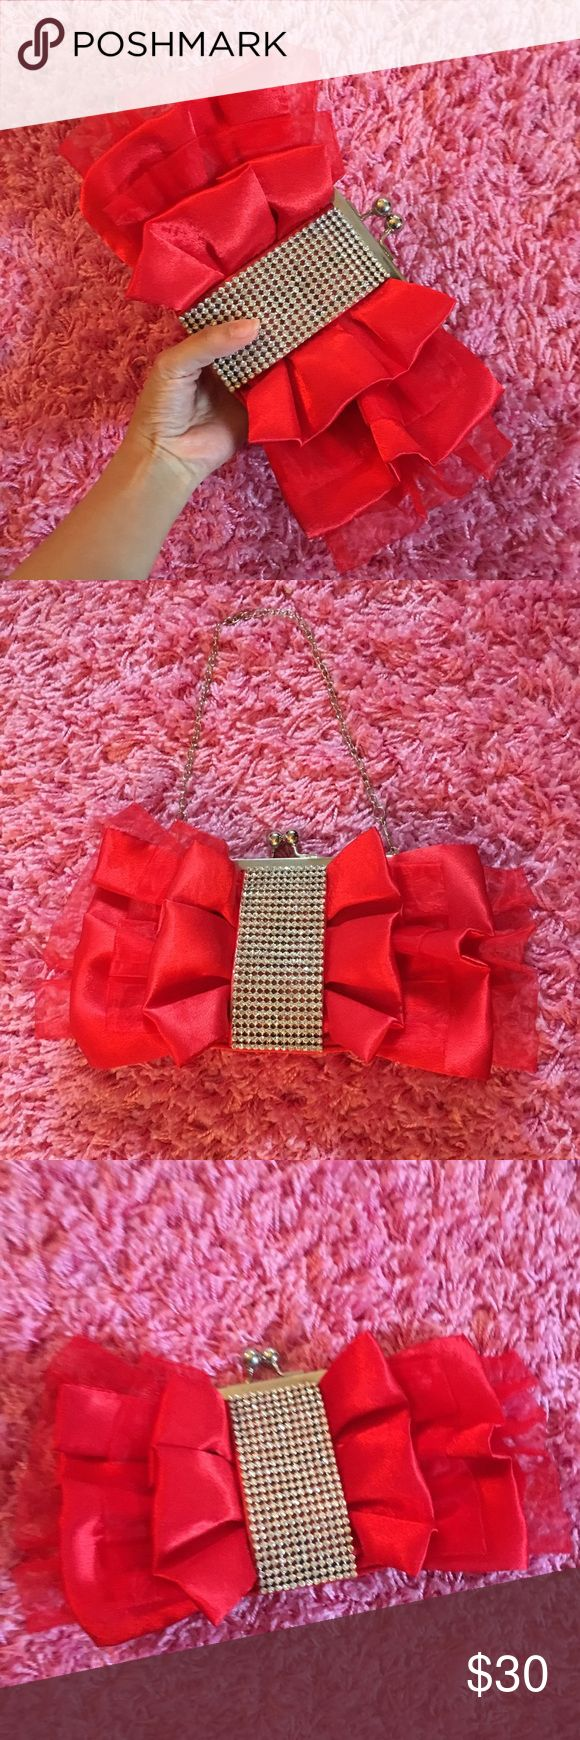 Rhinestone Faux Diamond Bling Red Clutch Bag Perfect for any blingy girls out there! ✨ Shine bright with this super cute bag for any evening out. ❤️😍 Open to offers. No trades. NWOT. (Listed as Kate Spade for exposure) kate spade Bags